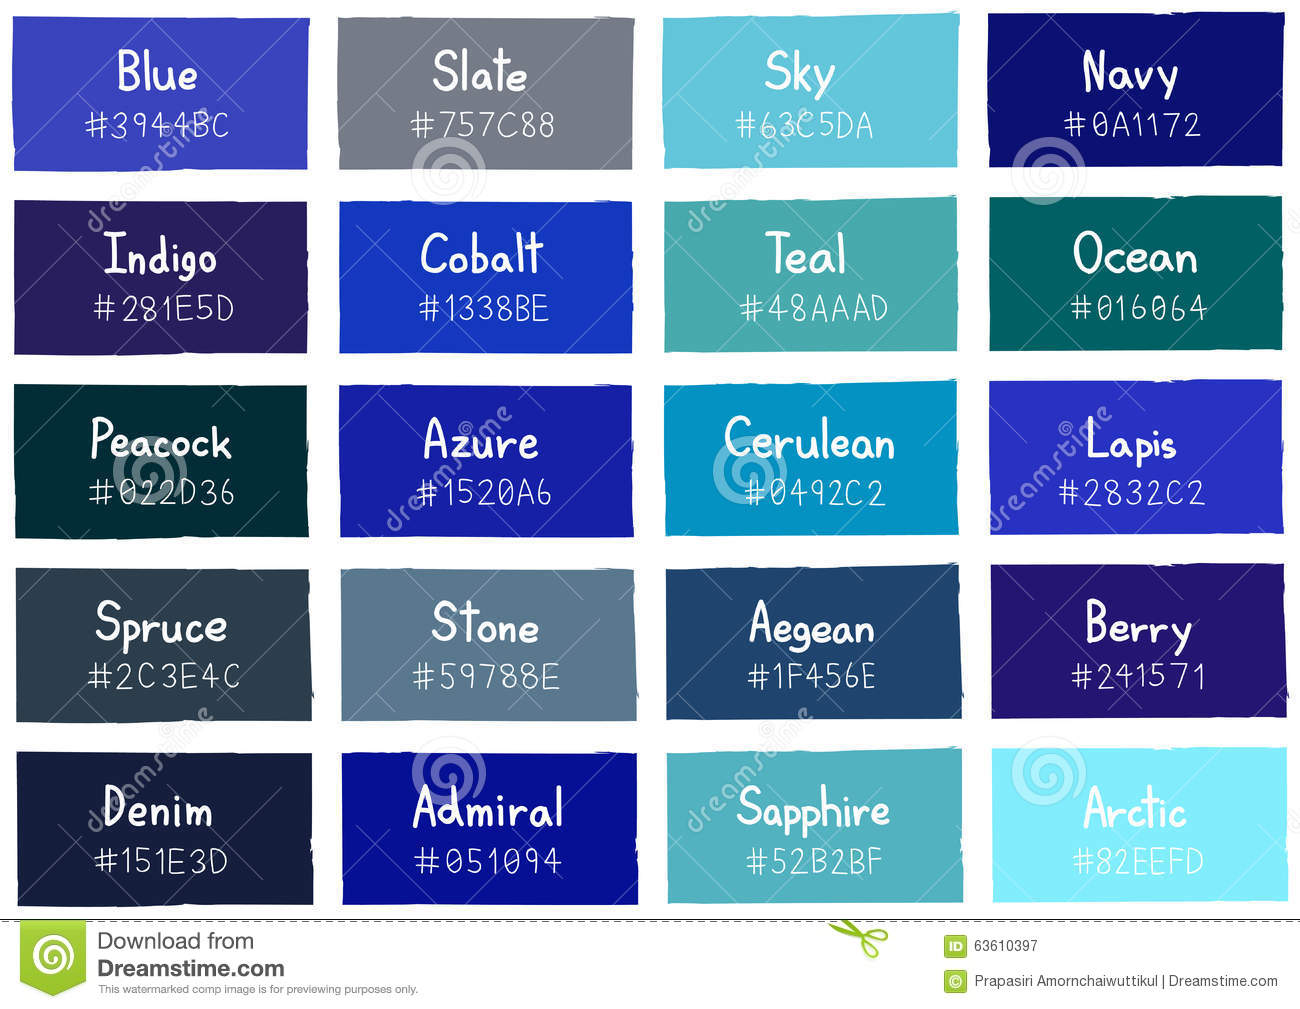 Blue Tone Color Shade Background with Code and Name